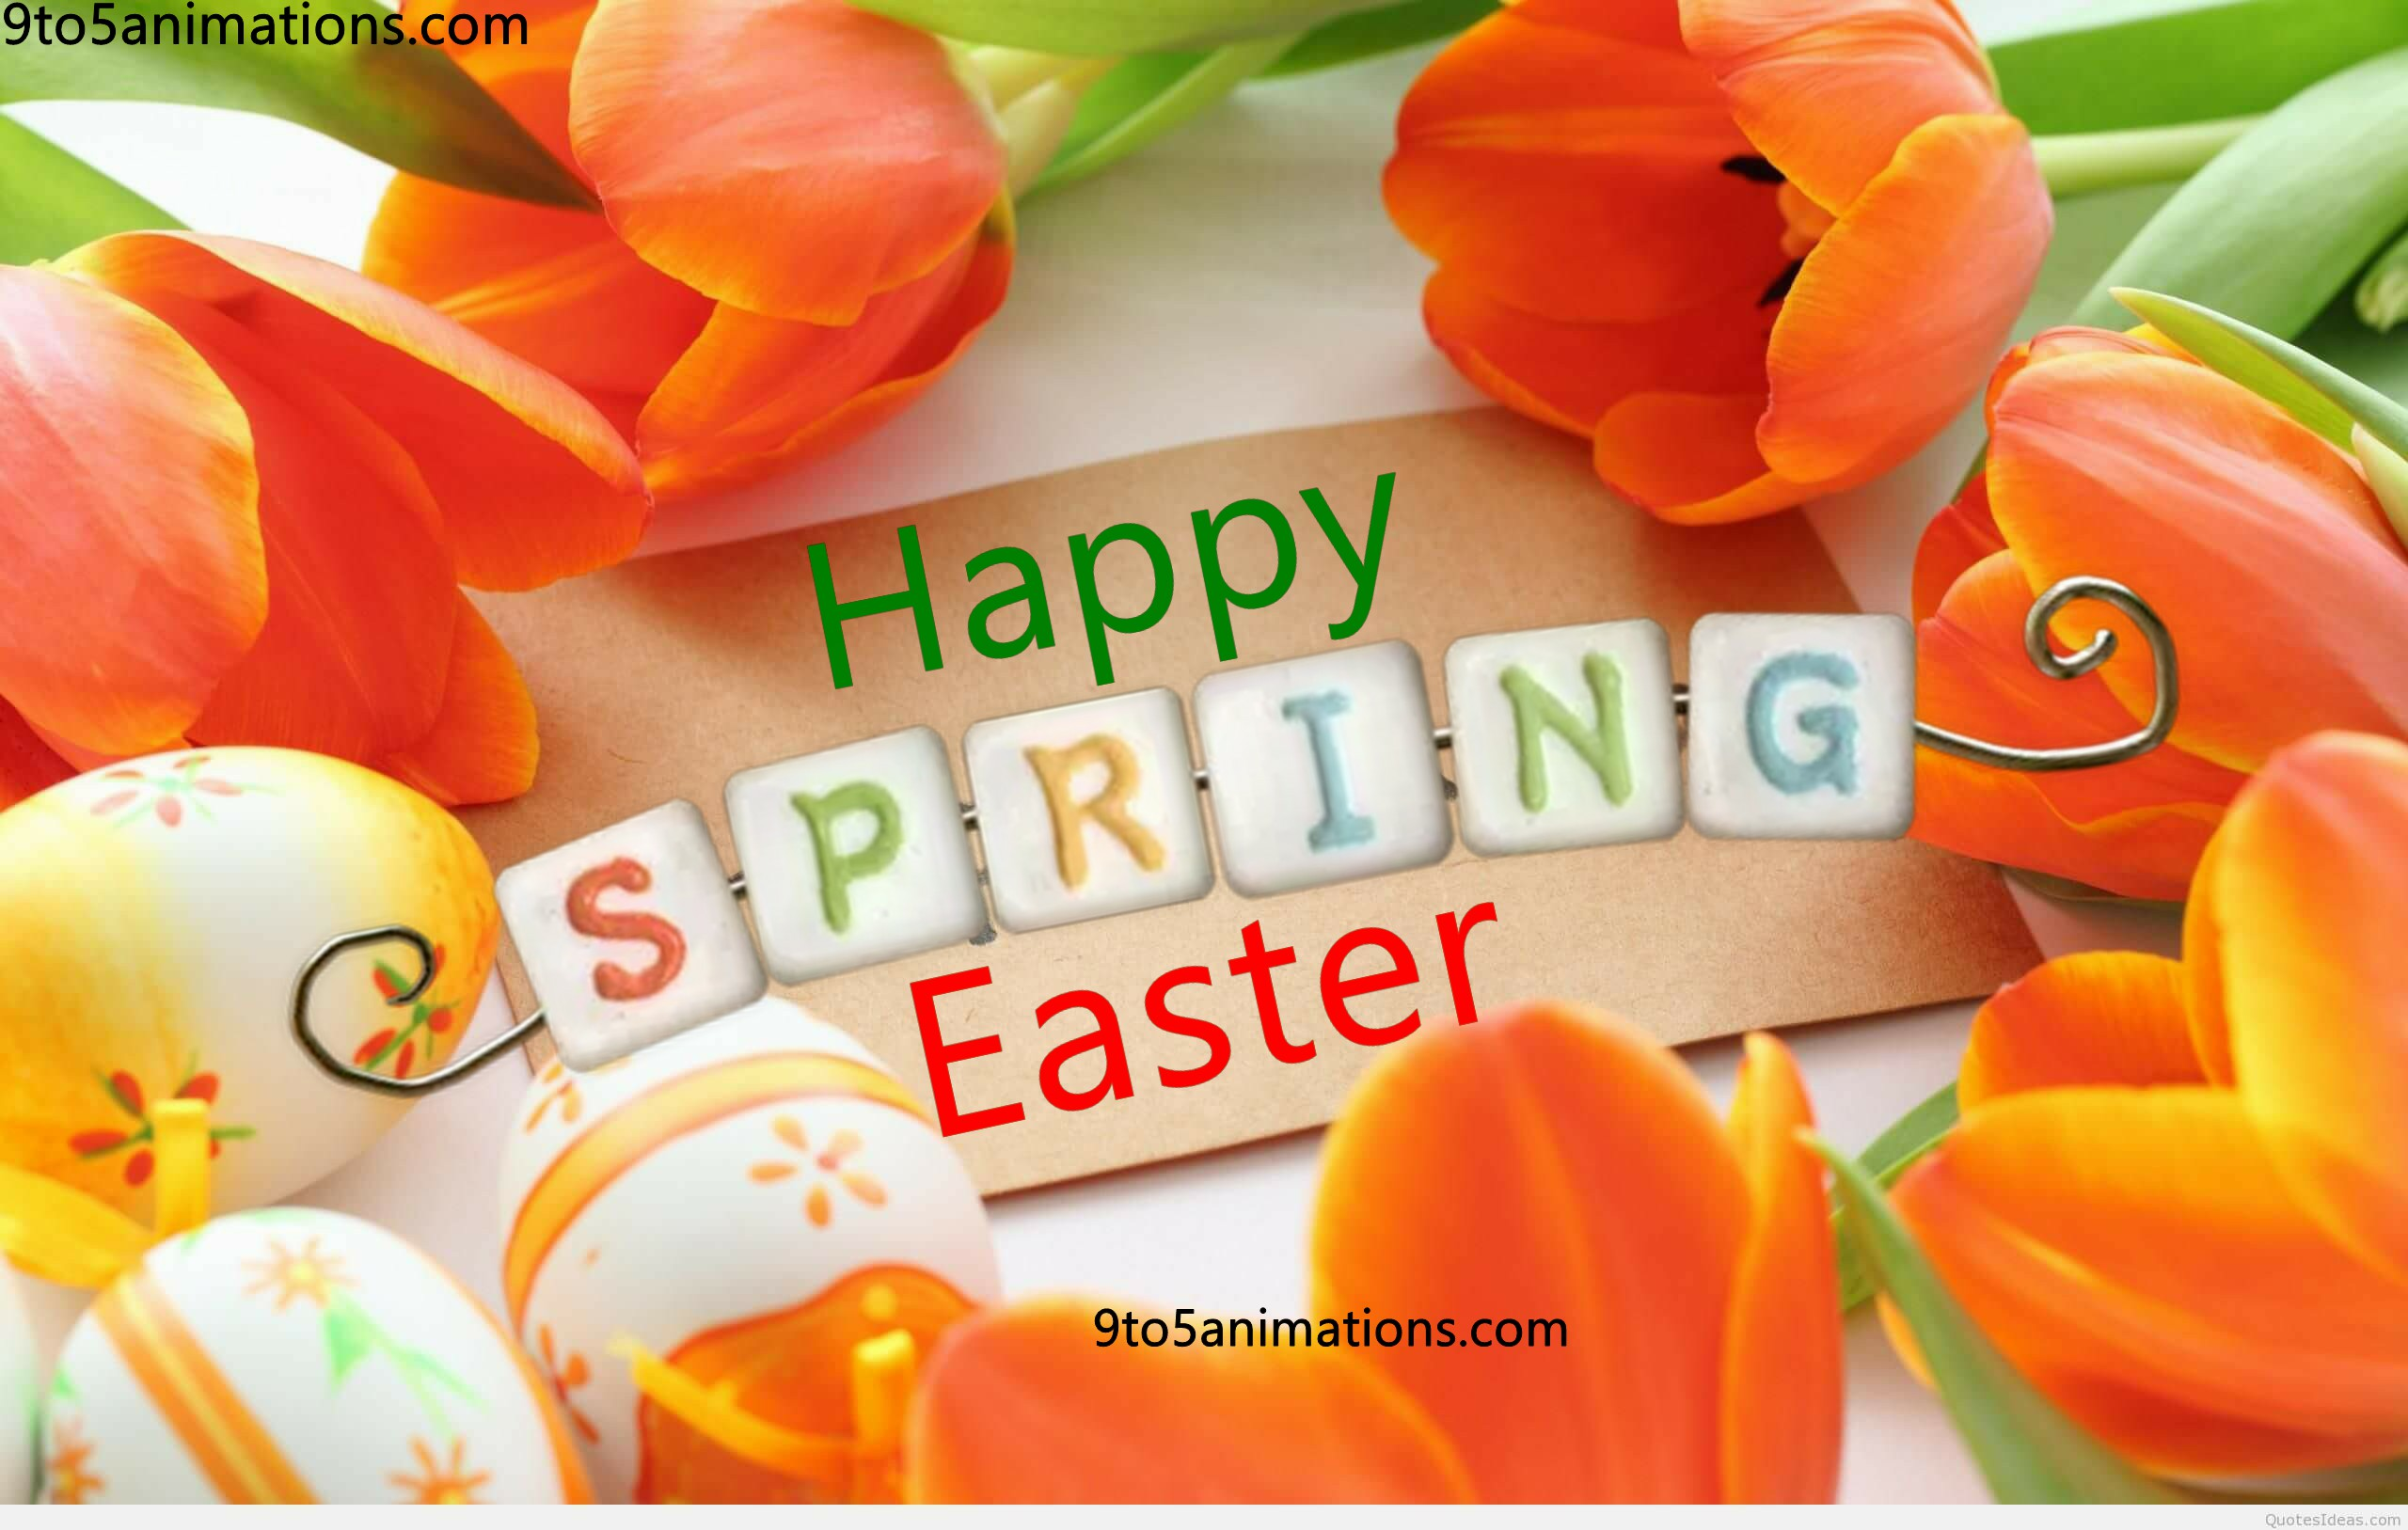 2018 Easter Wallpapers 9To5AnimationsCom 2560x1627